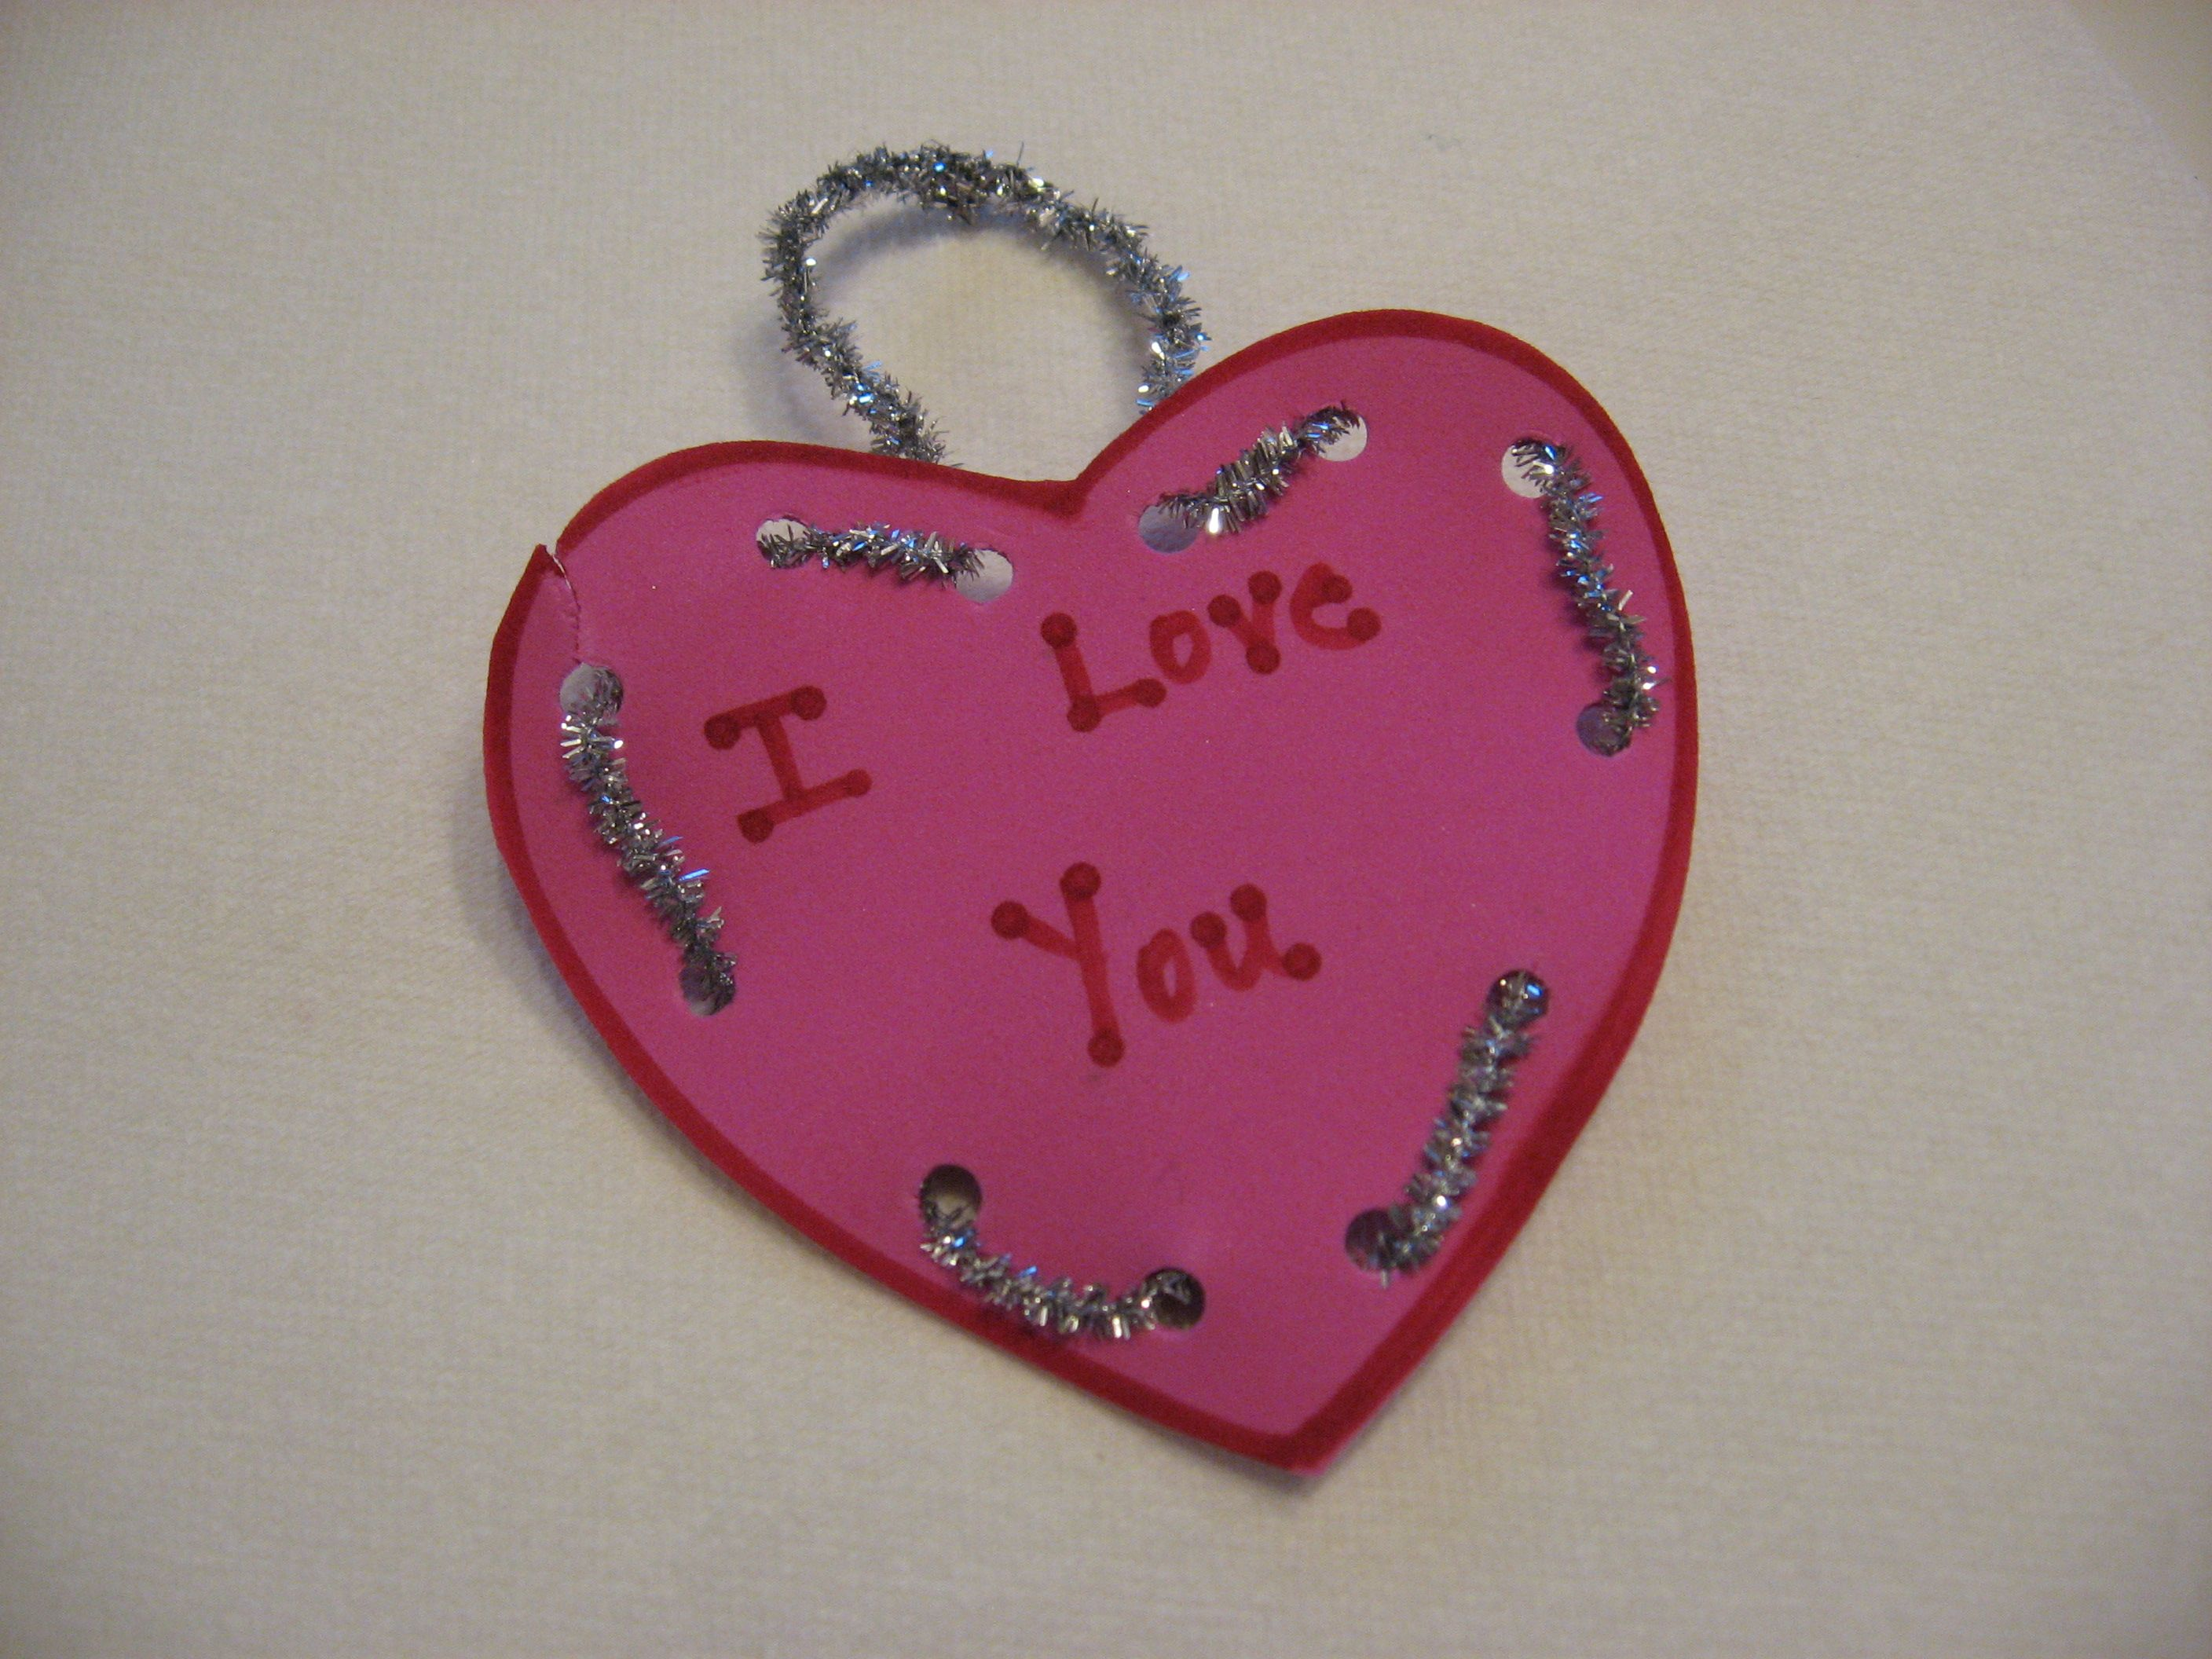 Valentines arts and crafts - Arts And Crafts Valentines Valentines Day Arts And Crafts Valentine Arts And Crafts Ideas Arts